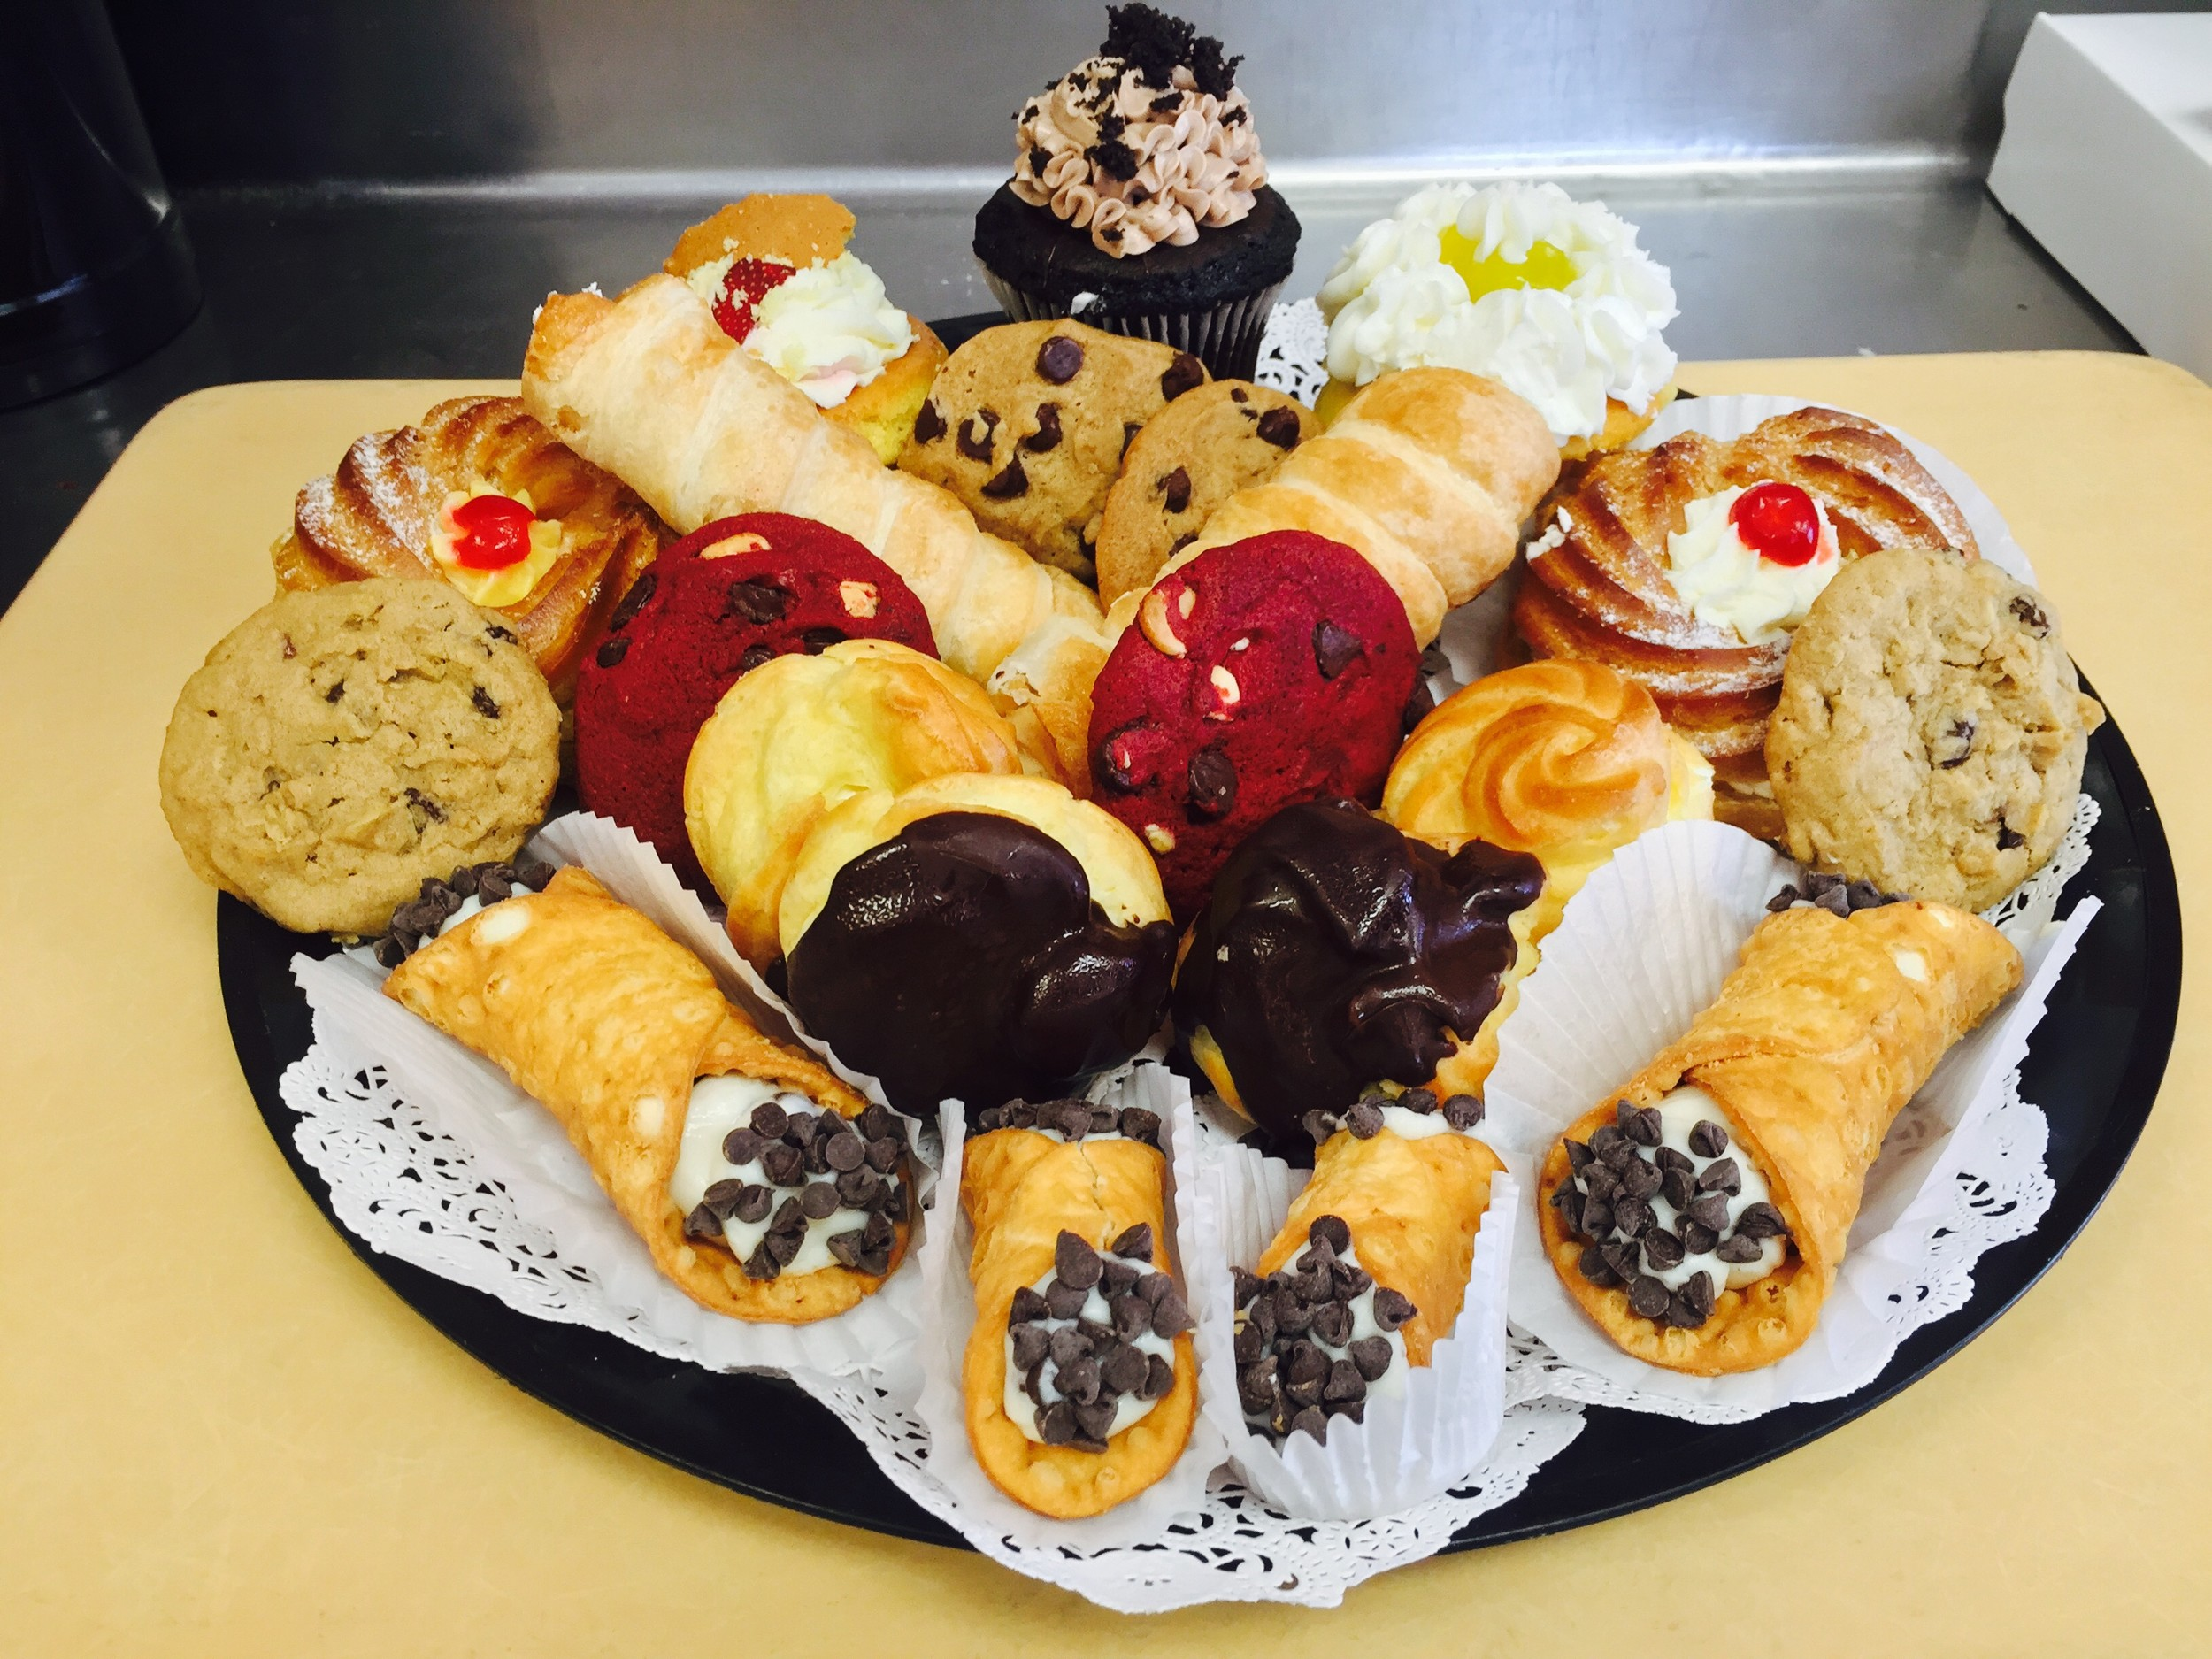 Come sample one of these delectable treats and tasty indulgences at Borrelli's Bakery, Johnston's longtime favorite bakery on Plainfield Pike ~ and meet its new owner Ruchita Patel!